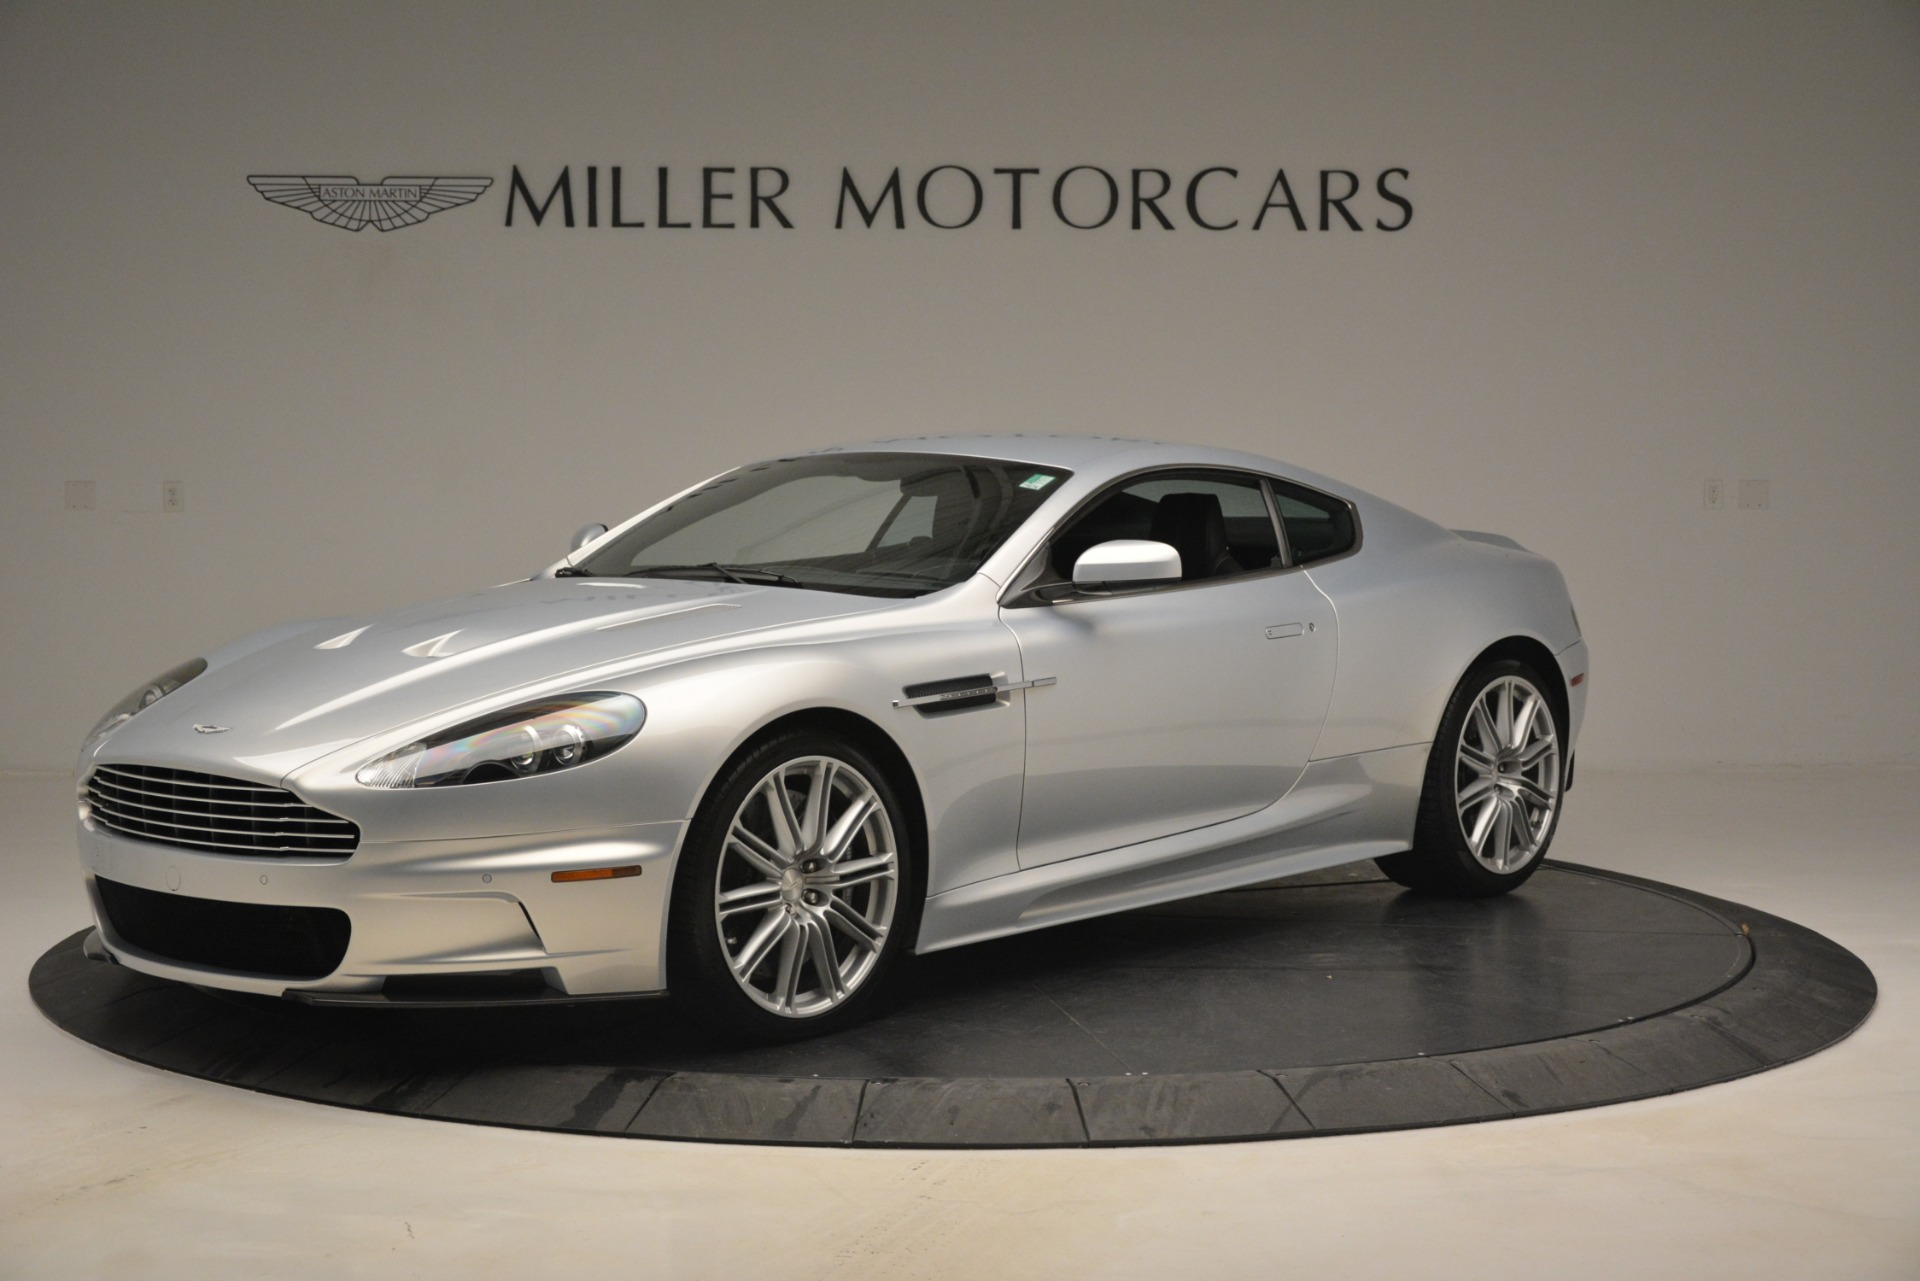 Used 2009 Aston Martin DBS Coupe For Sale In Westport, CT